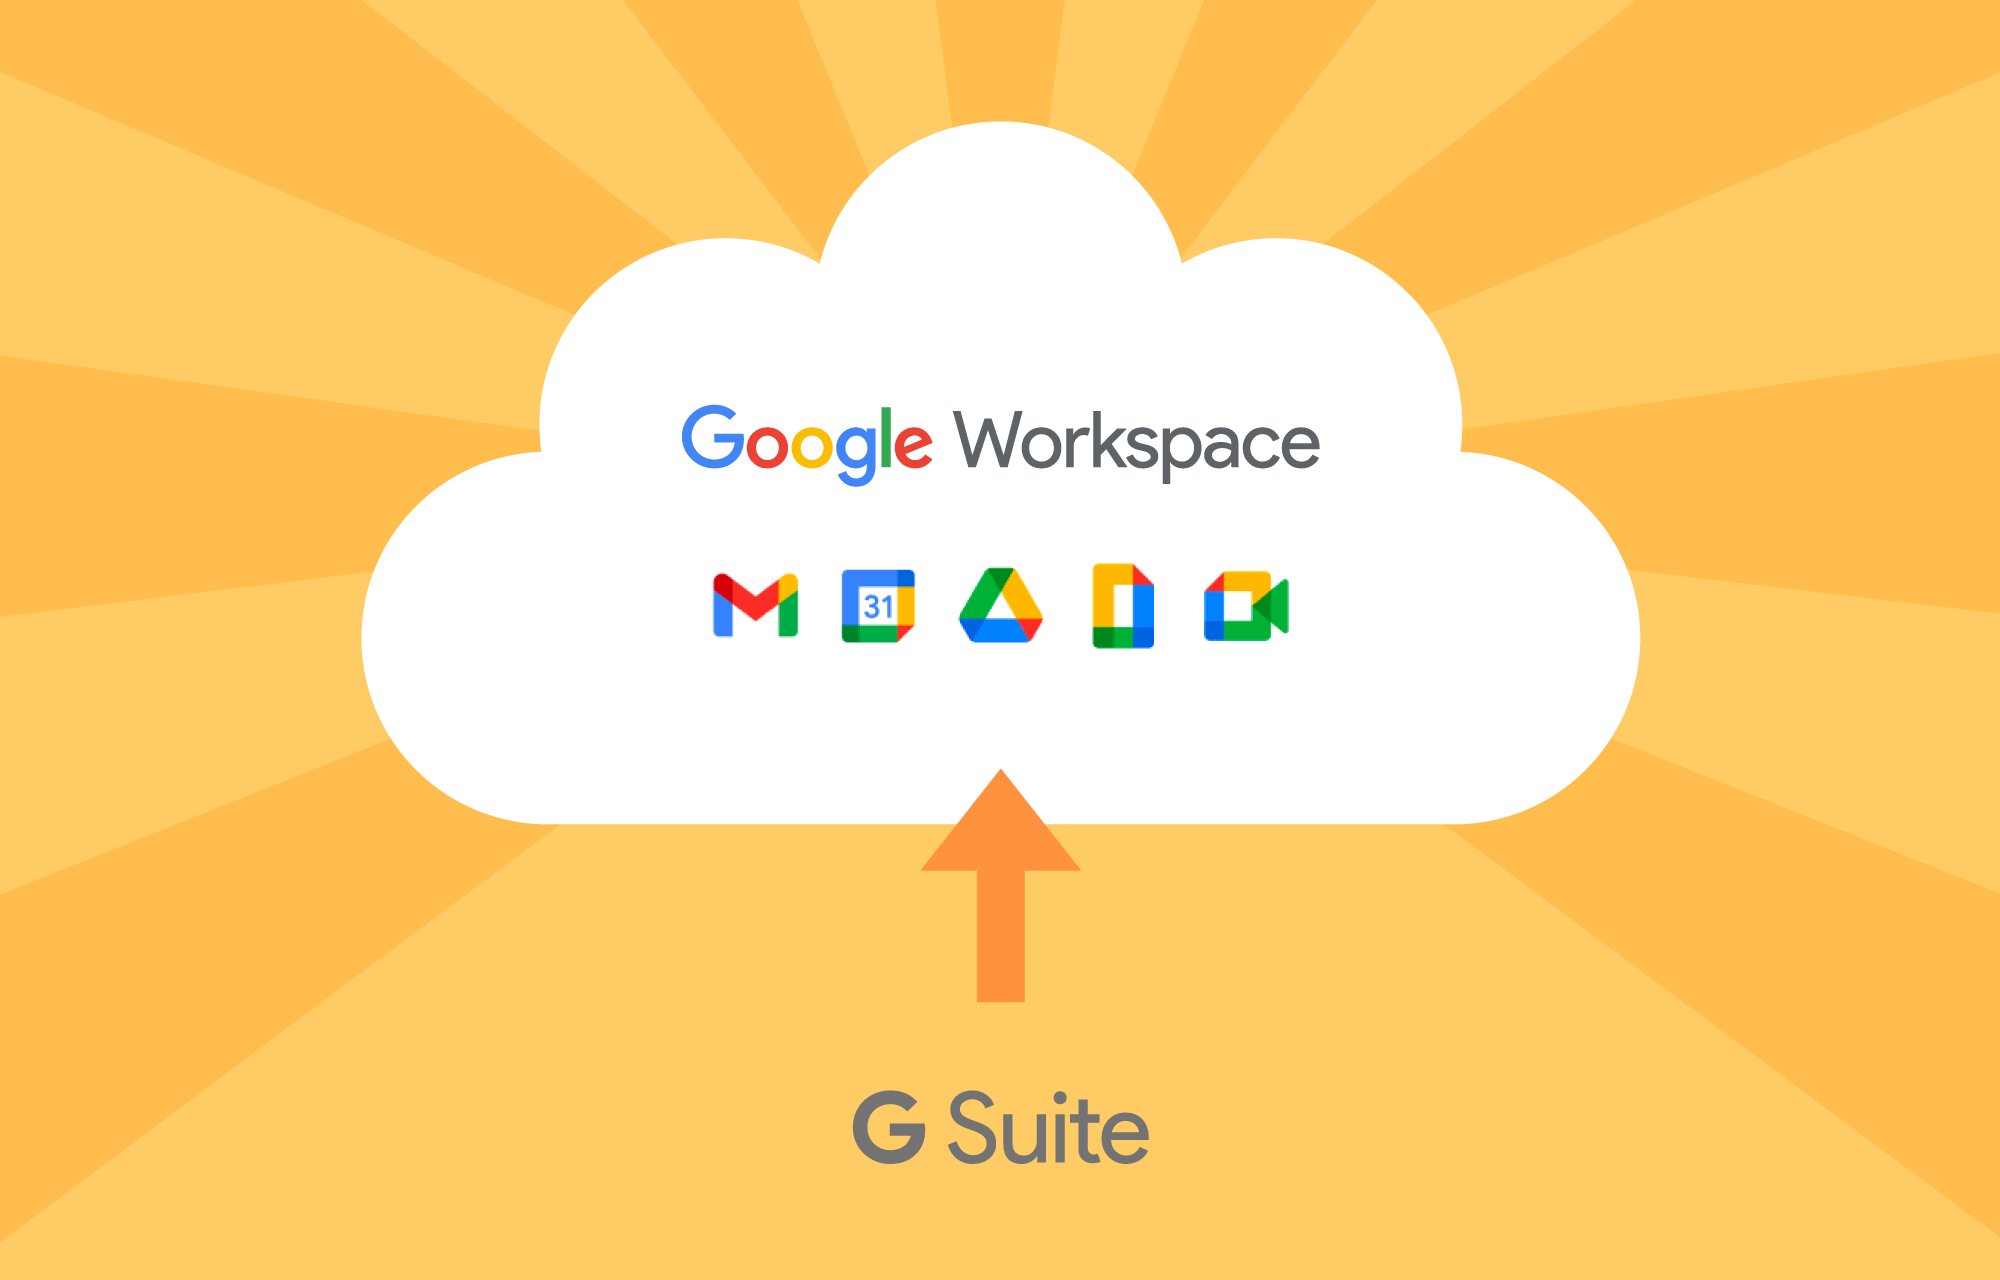 G Suite is history – please welcome Google Workspace!